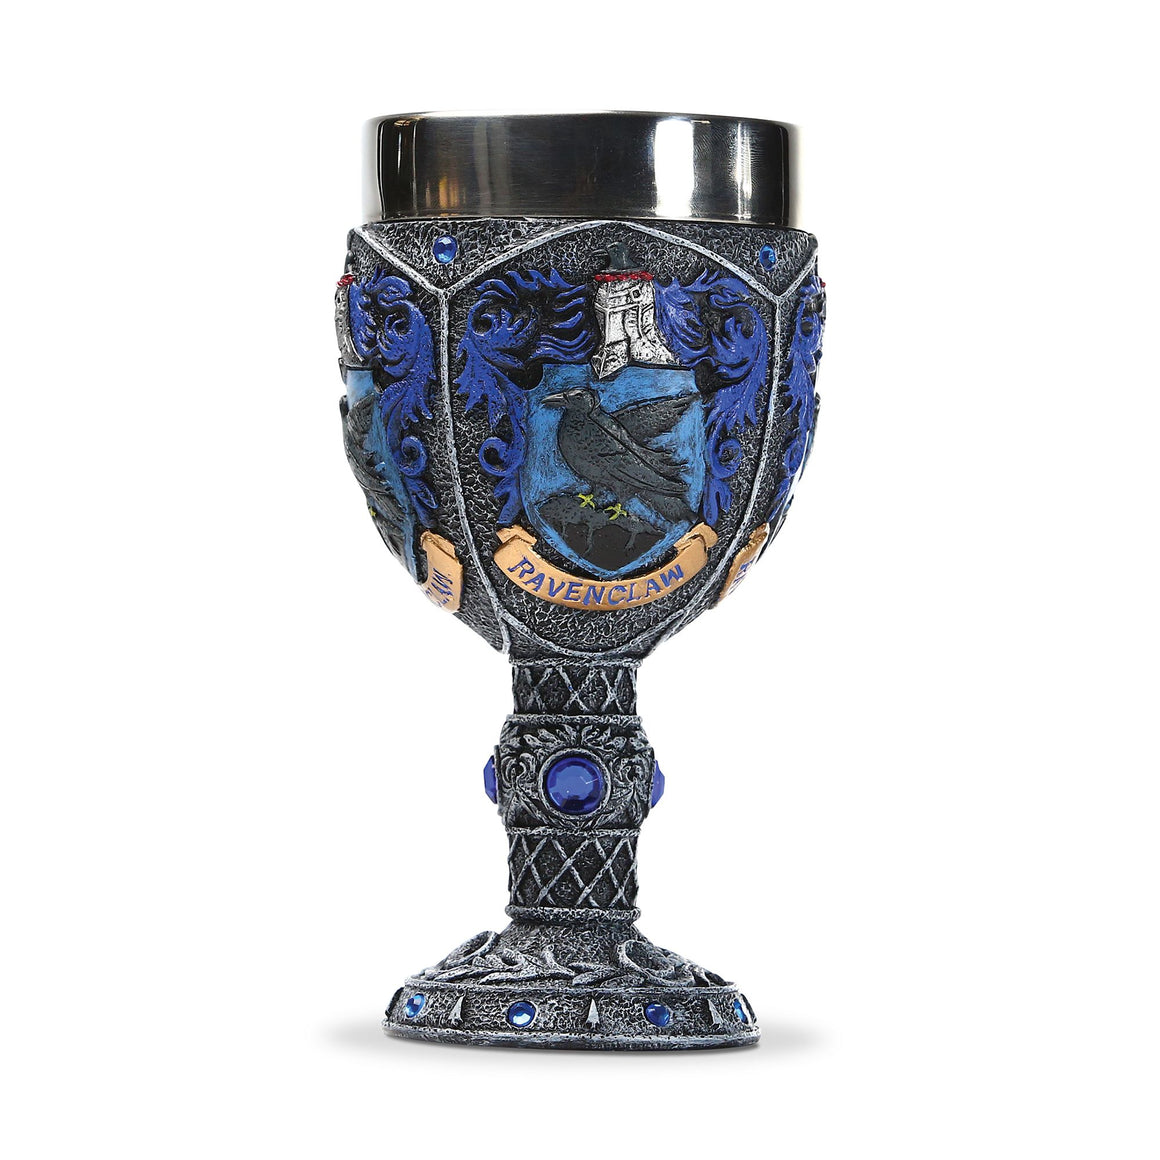 Ravenclaw Decorative Goblet - The Wizarding World of Harry Potter